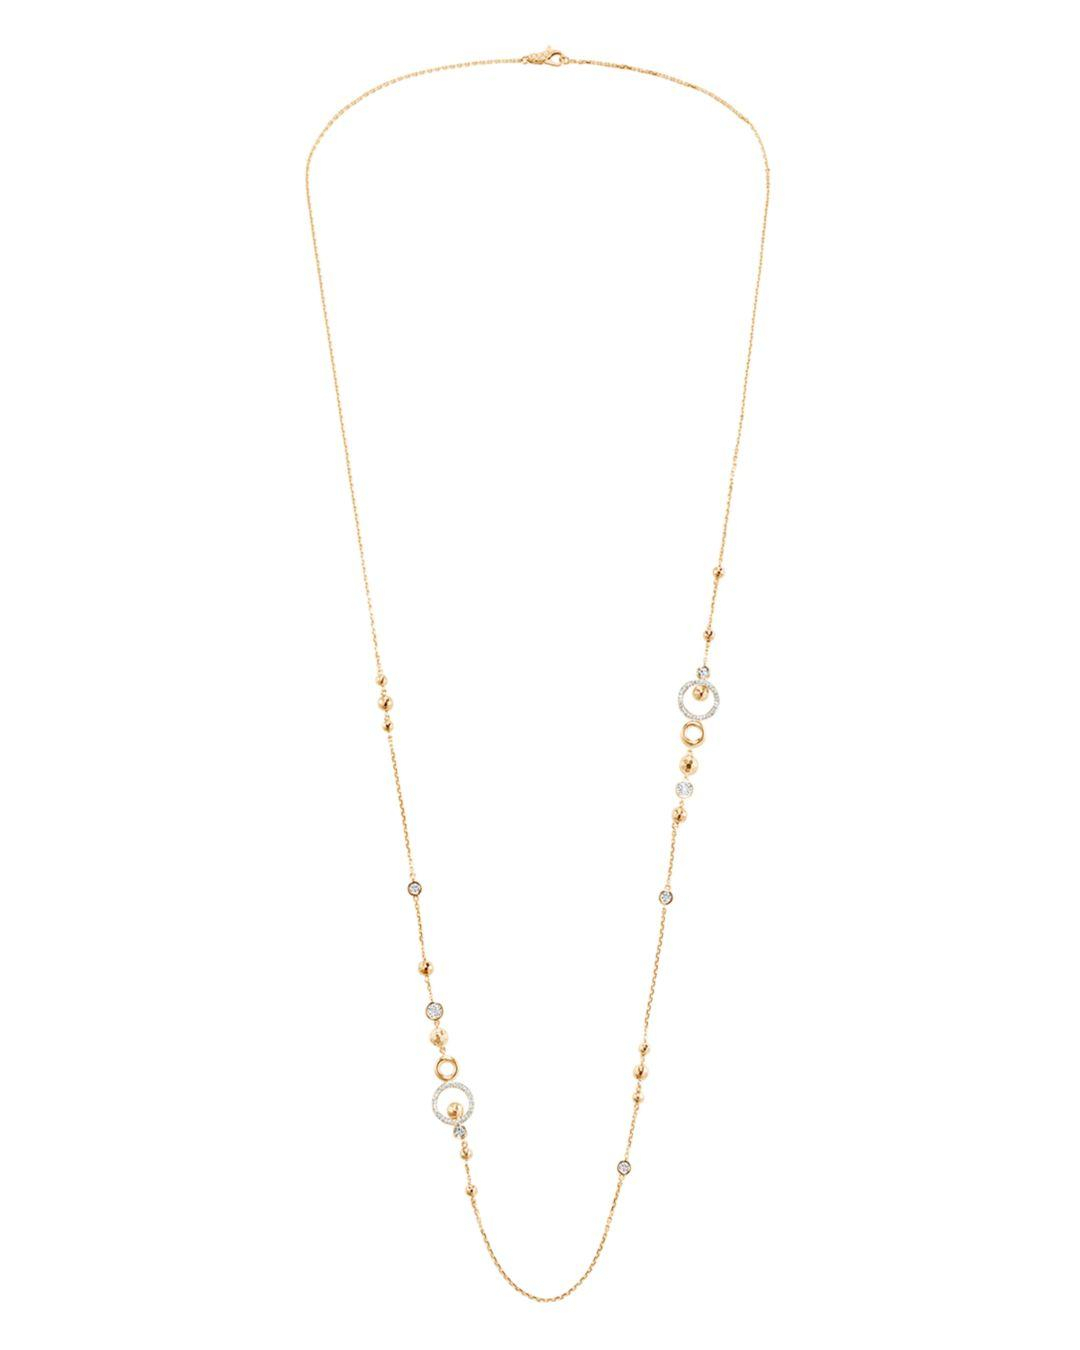 John Hardy 18k Yellow Gold Dot Pavé Diamond Sautoir Chain Pertaining To Most Up To Date Diamond Sautoir Necklaces In Yellow Gold (View 4 of 25)